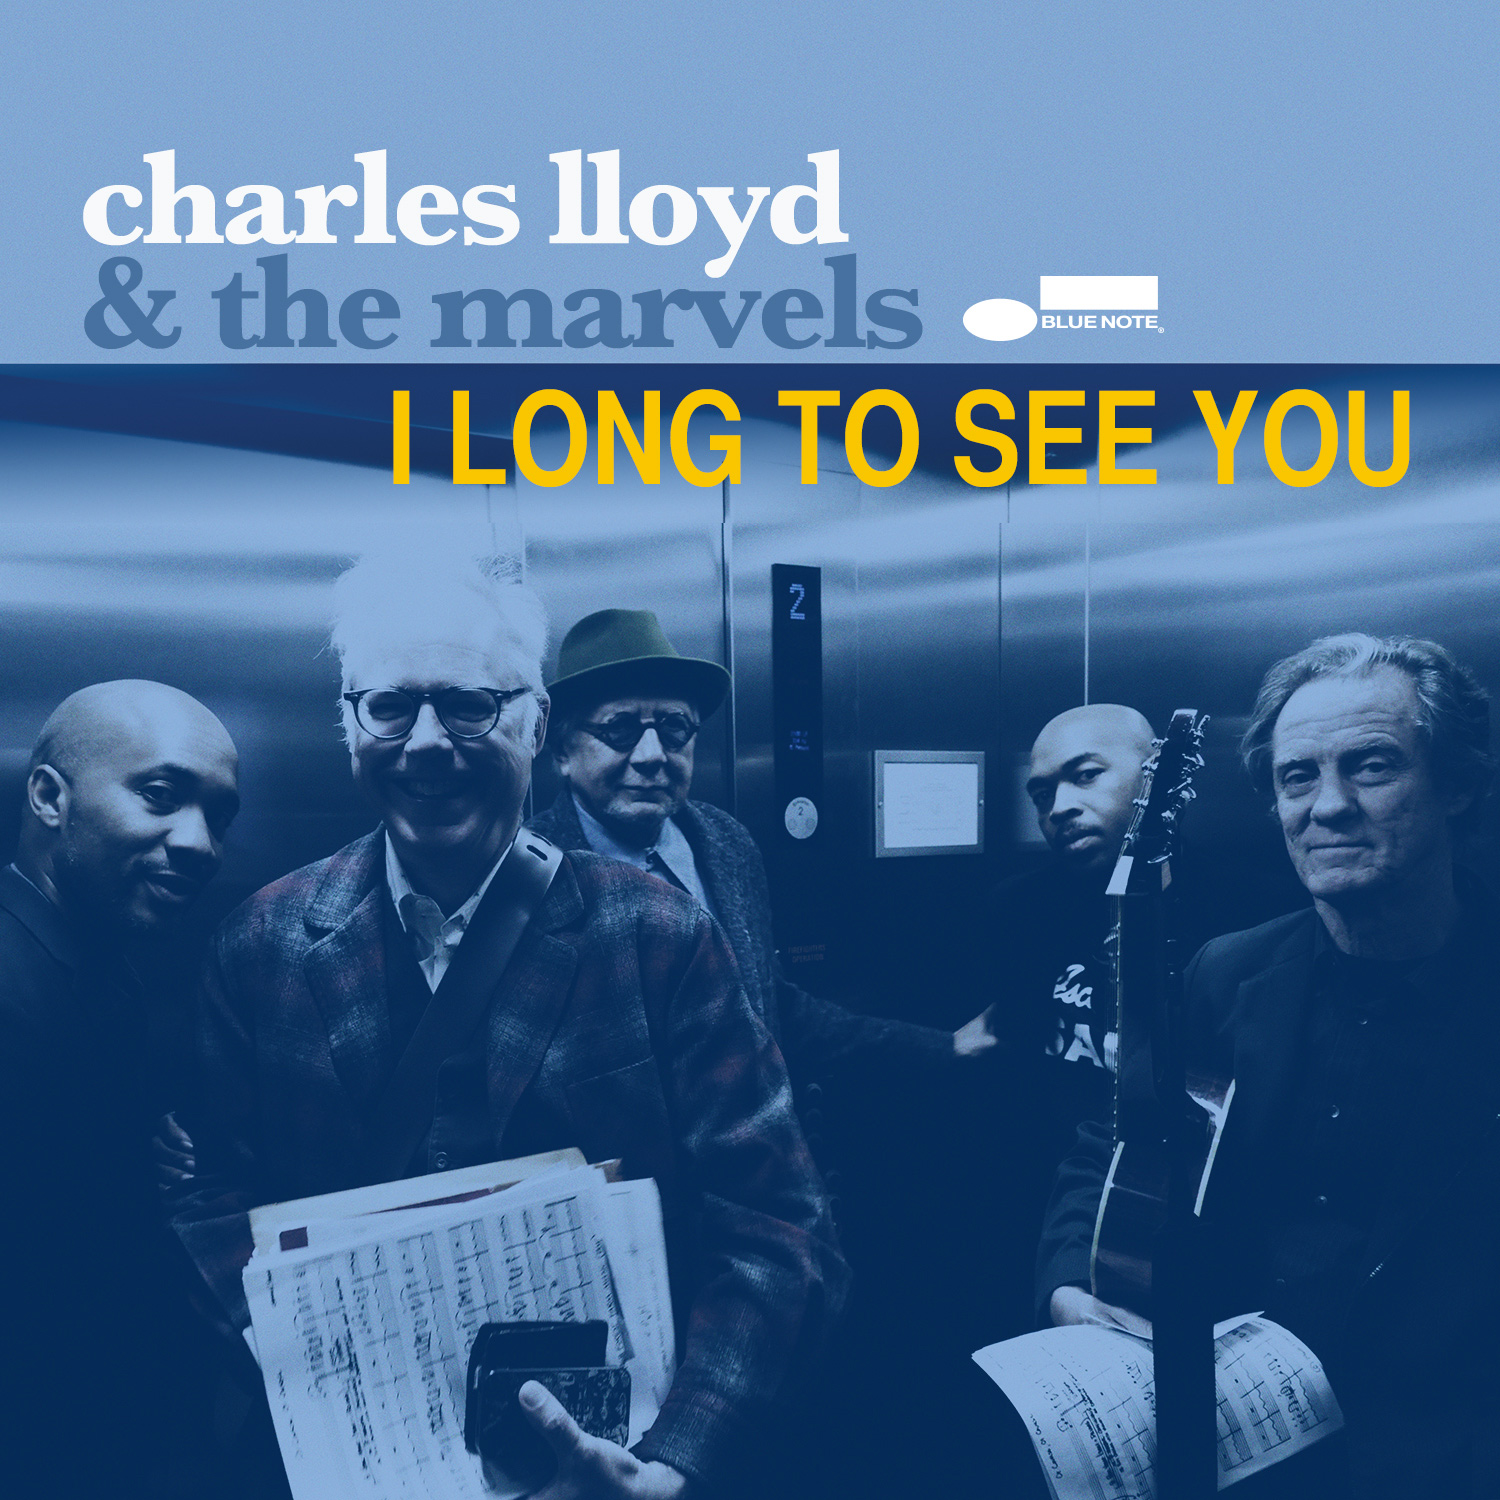 Charles Lloyd & the Marvels «I long to see you»